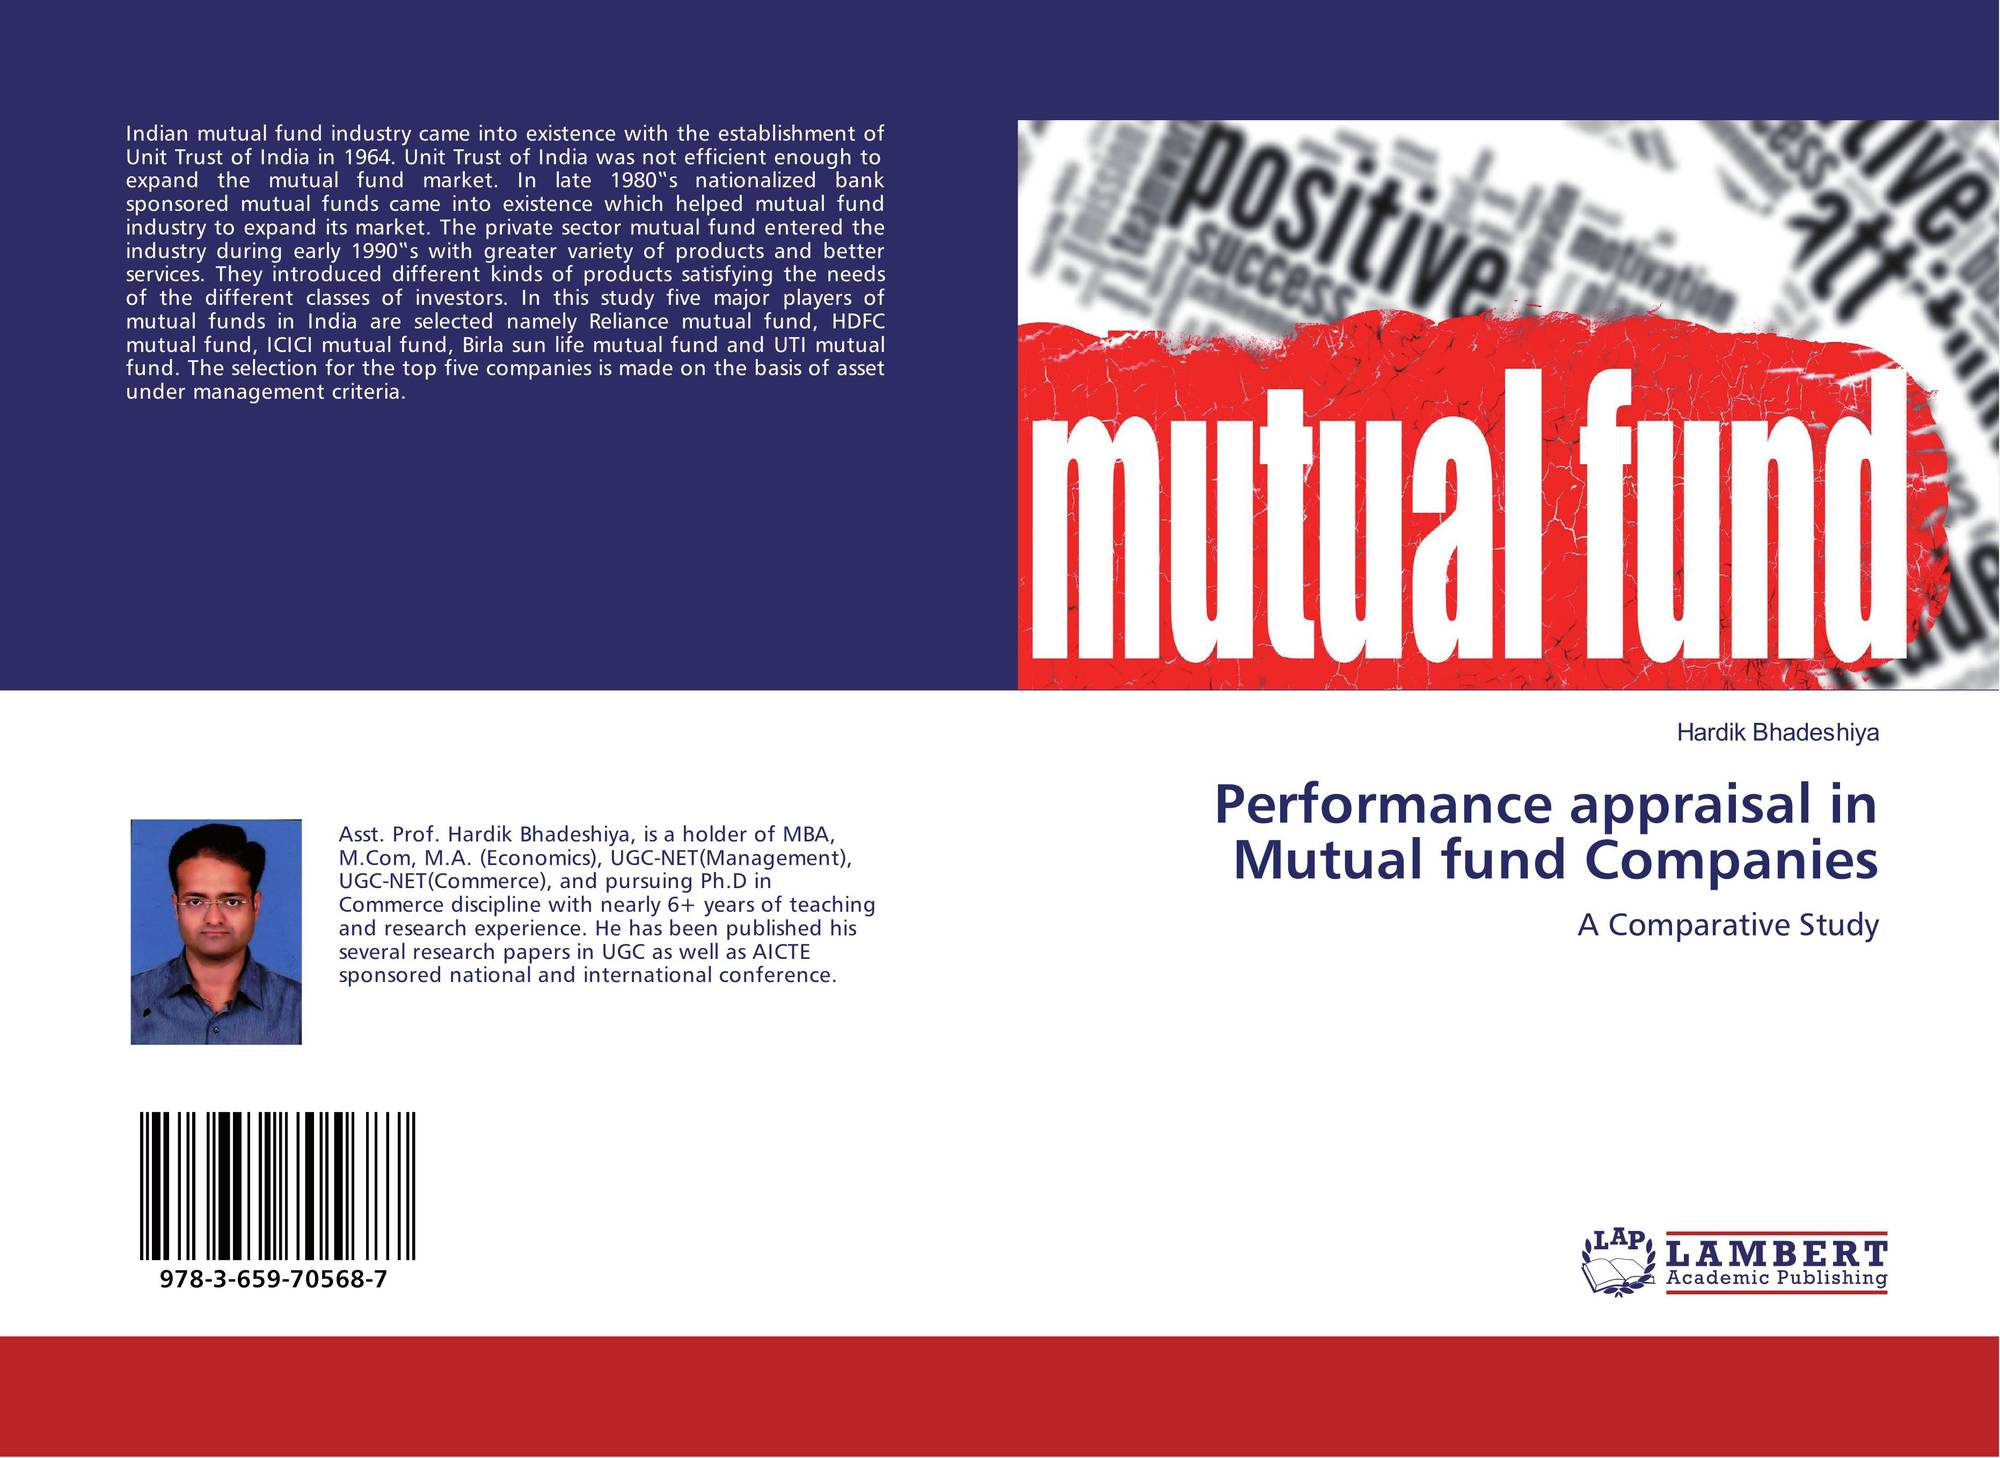 a comparative study of hdfc mutual fund and ulip product And when investing in such a product, one has to understand it completely and track its performance to make sure the investor gets the promised returns hdfc life click2invest - ulip is an online unit linked insurance plan.